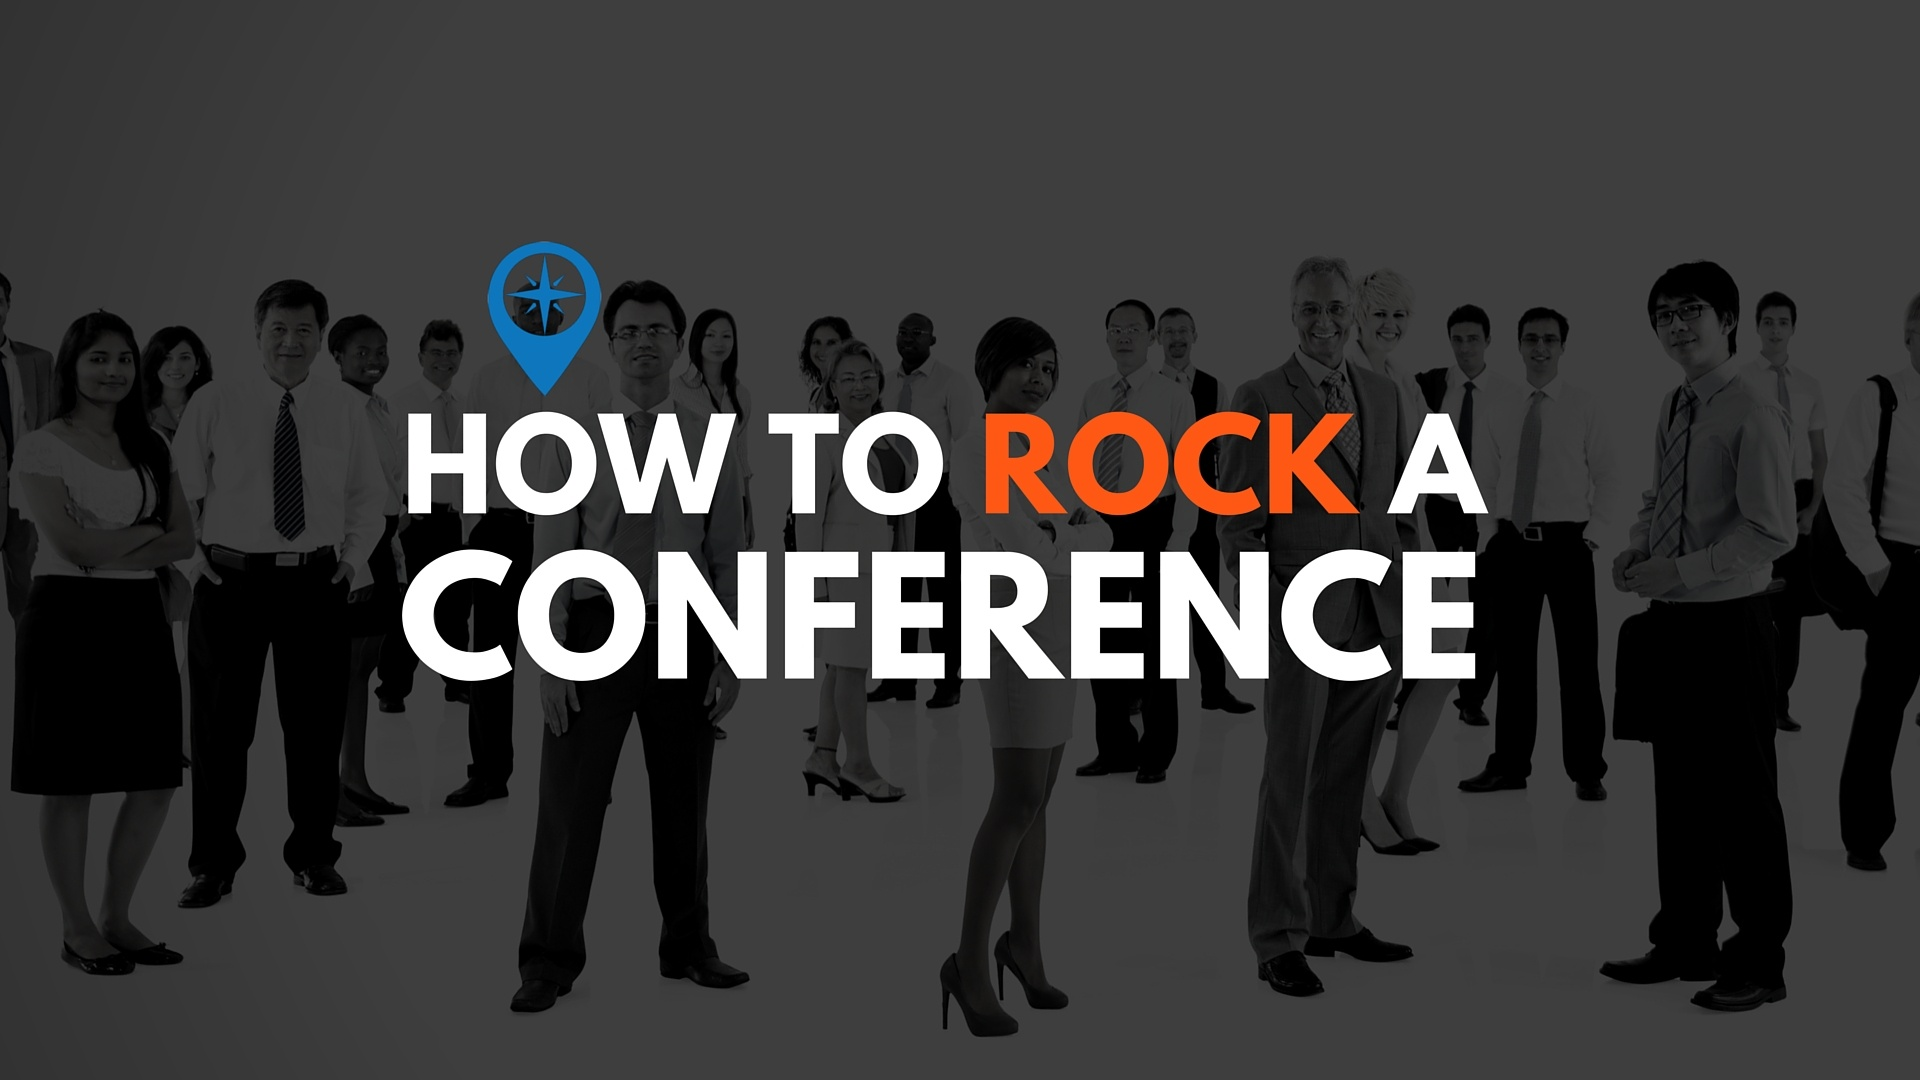 How-to-work-a-conference-m